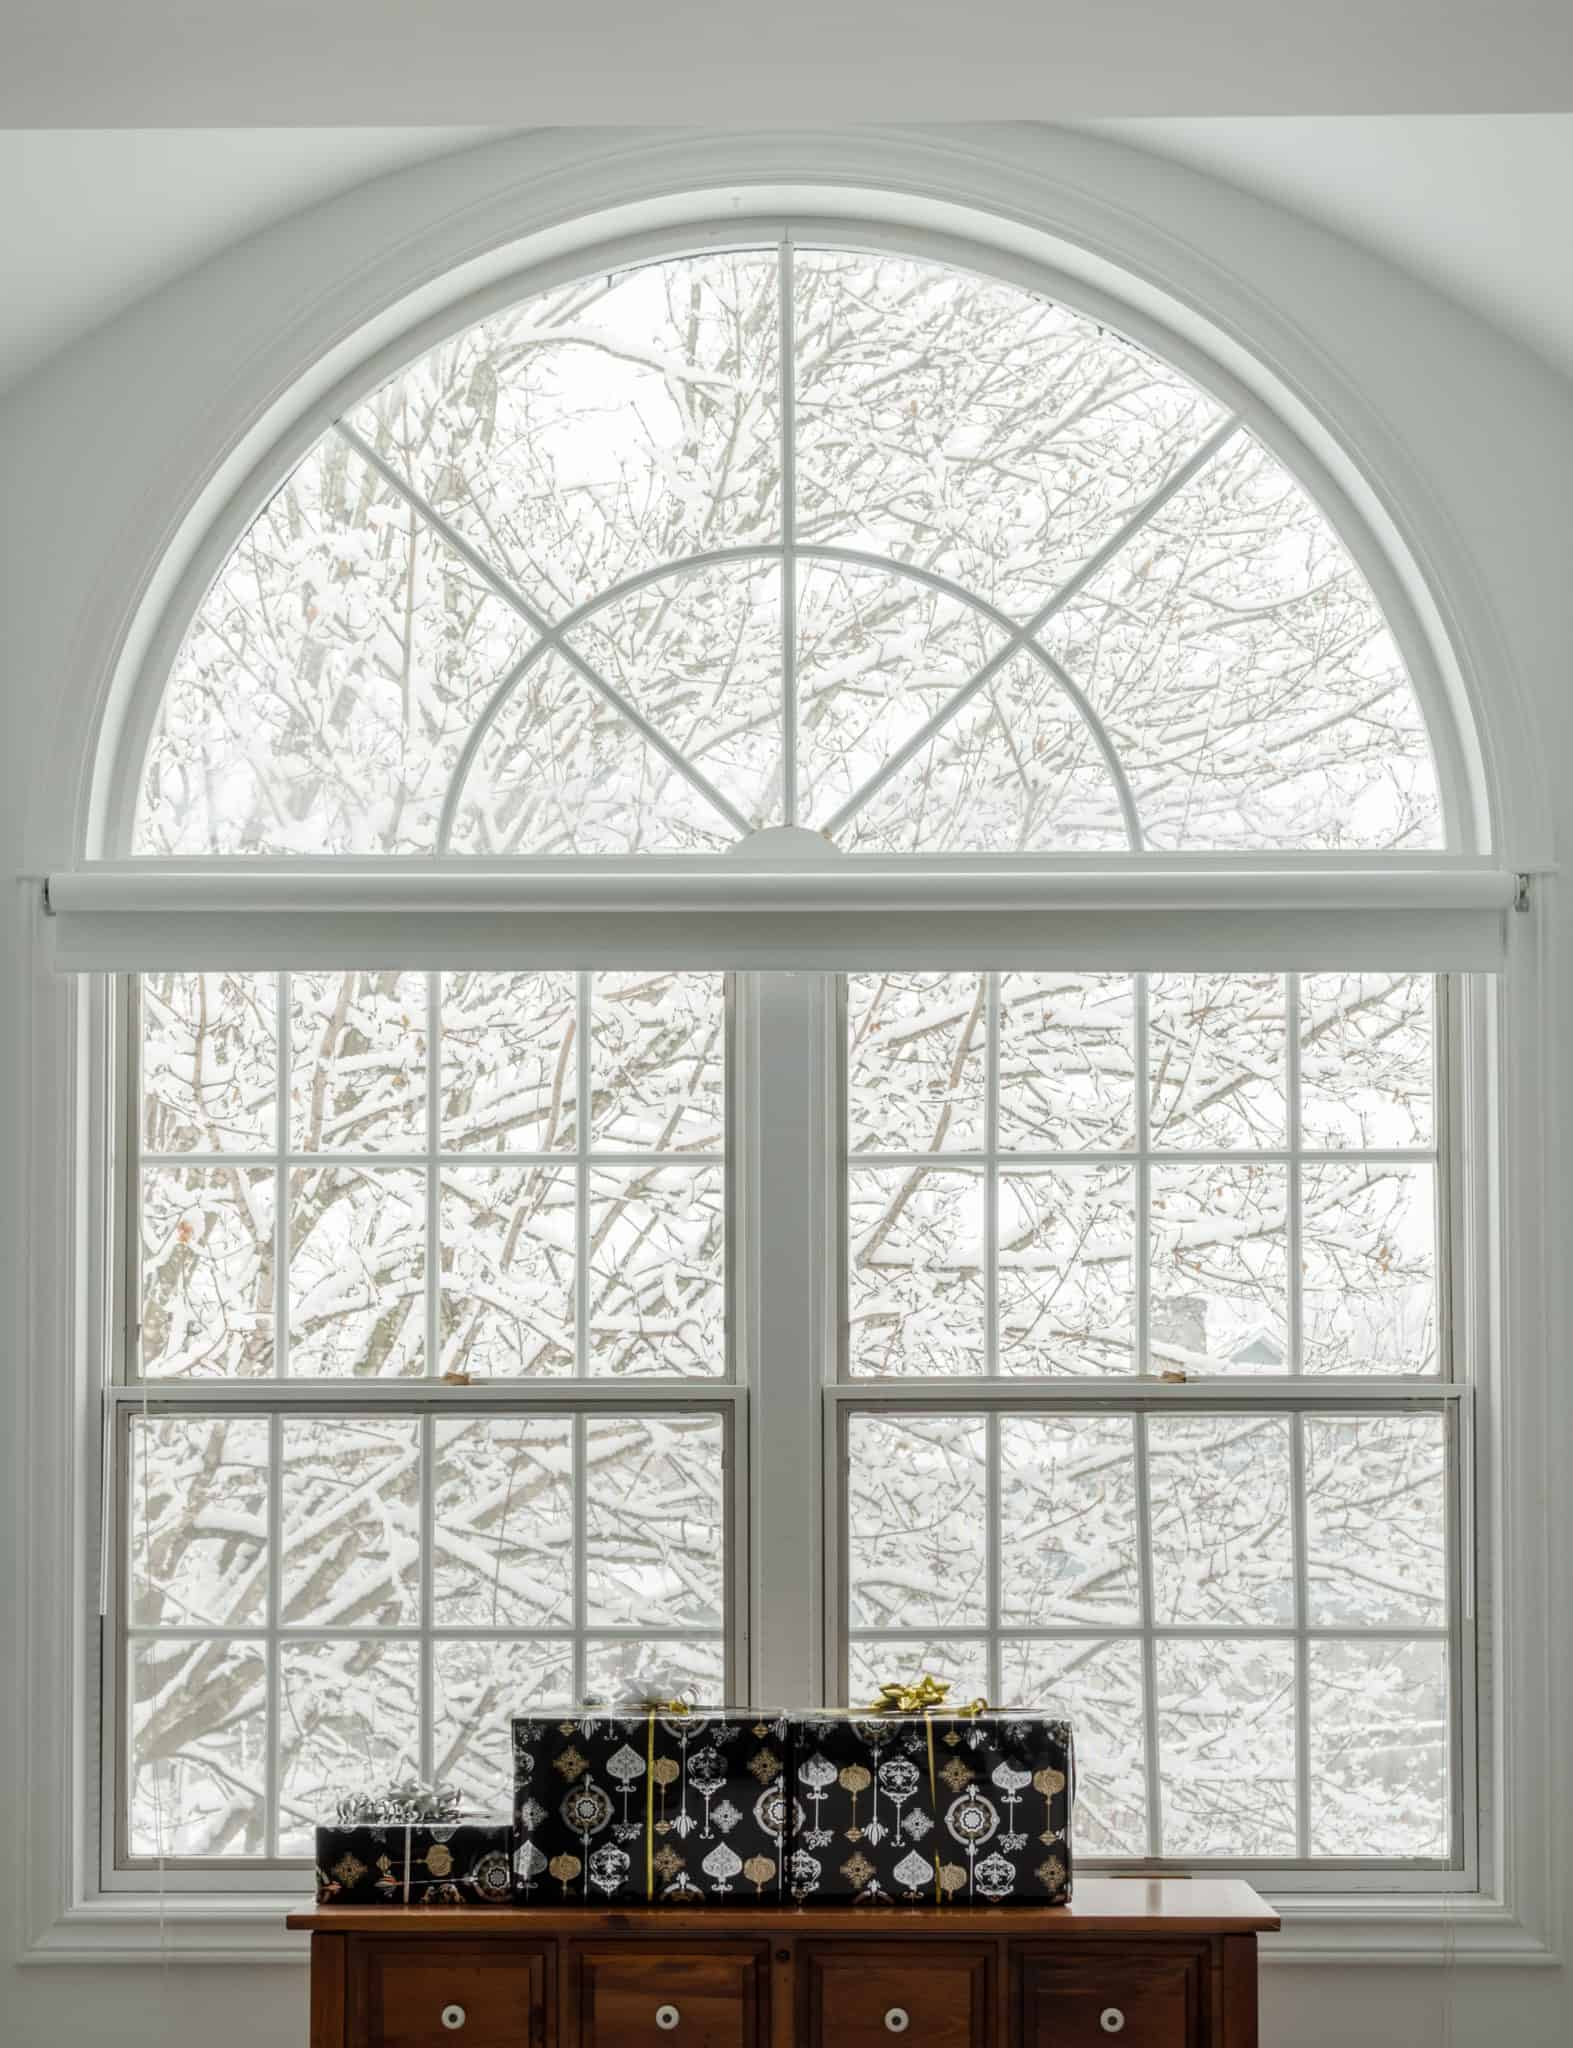 Large white transom window with snowy background